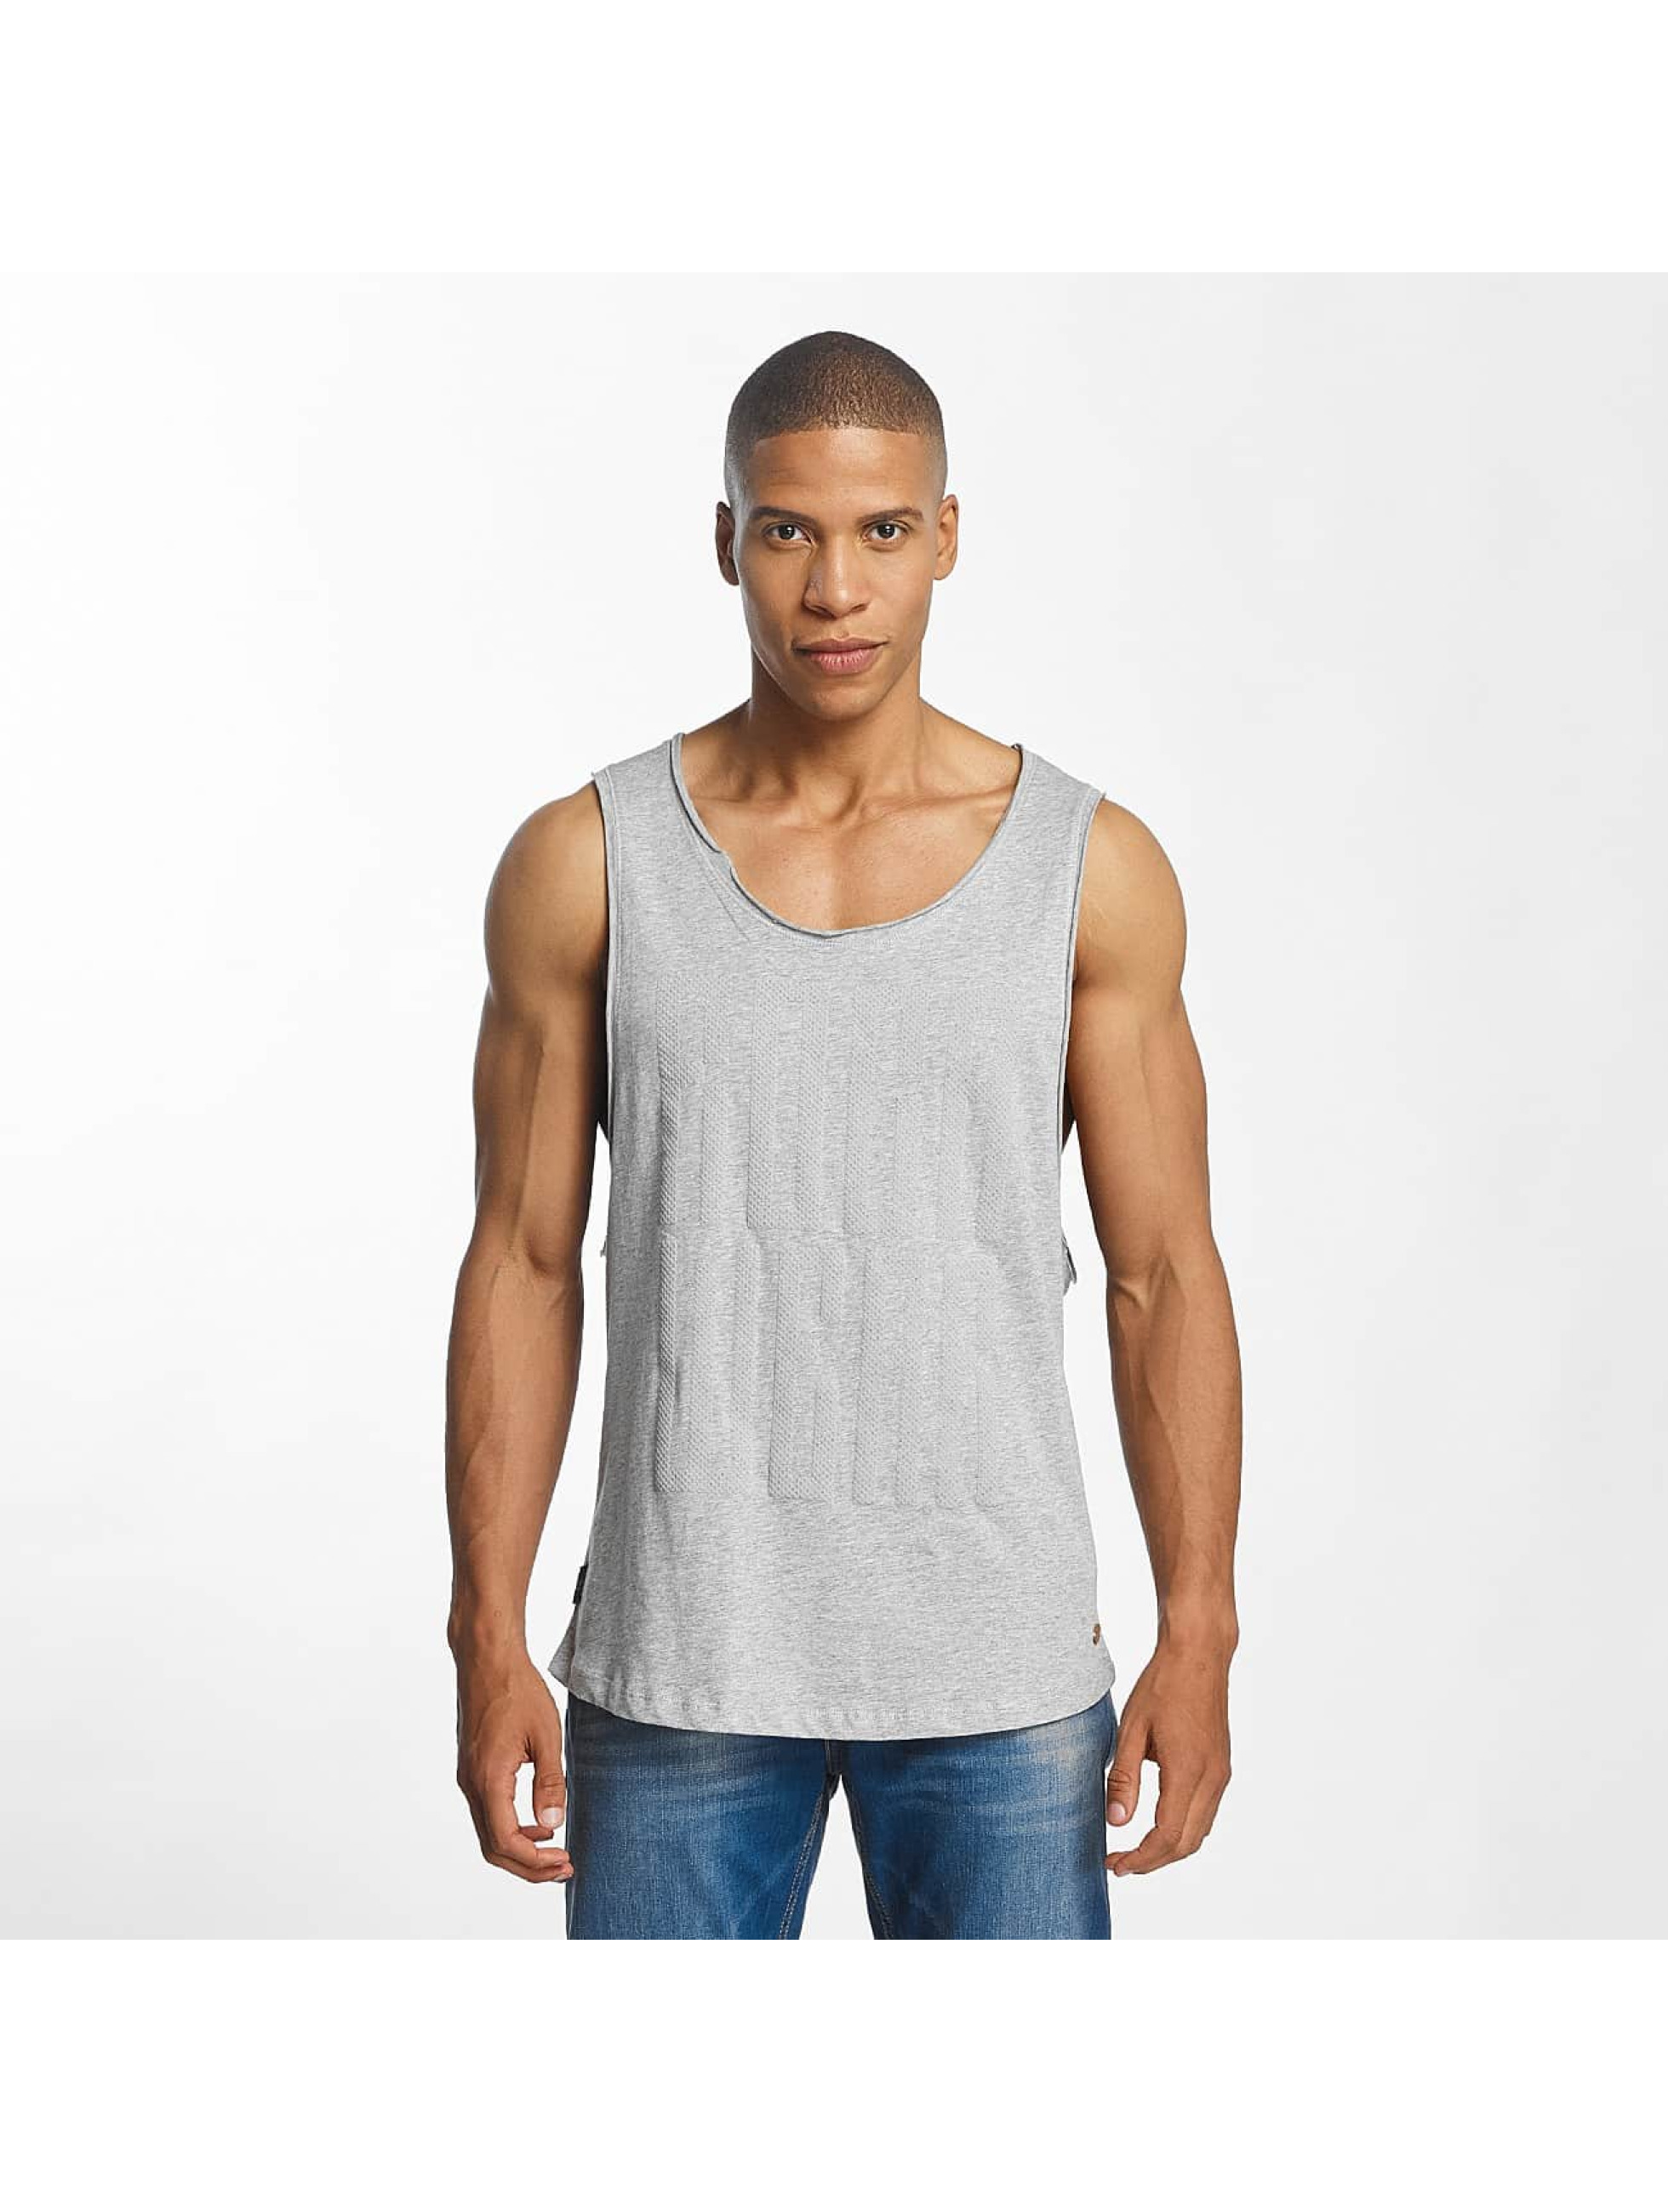 Rocawear / Tank Tops Charly in grey XL